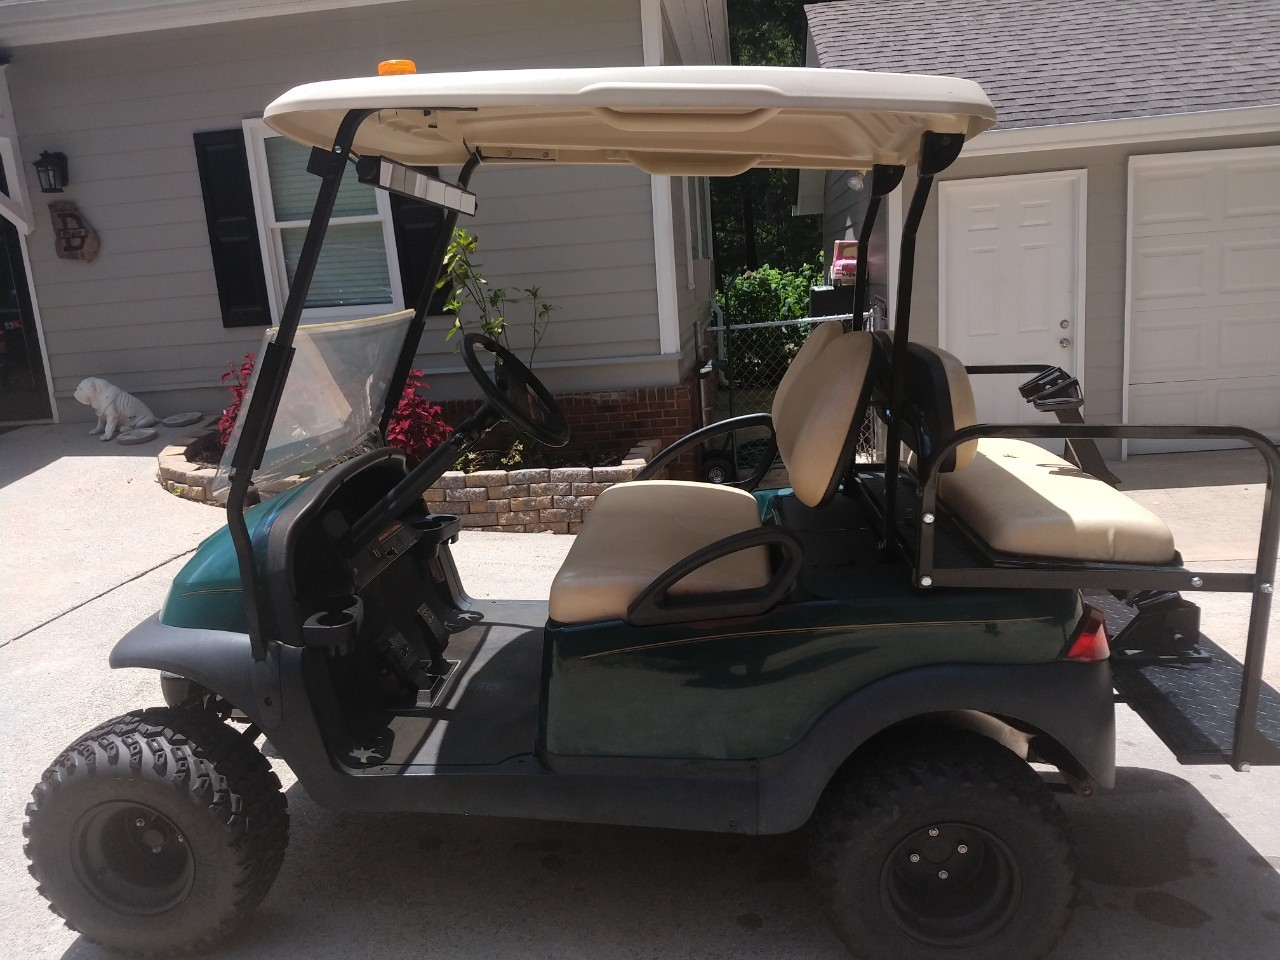 Club Car For Sale - Club Car Golf Carts ATVs - ATV Trader Club Car Golf Cart Not Starting on club car atv, club car titanium cooler, club car xrt, club car accessories, club car caroche, club car dealer locator, club car trailers, lifted ezgo txt carts, club car custom seats, club car kawasaki engine, club car resistors, club car ds, club car identify year, club car 2015, club car precedent, club car used prices, club car medical, lift kits for club carts, club car snow plows,